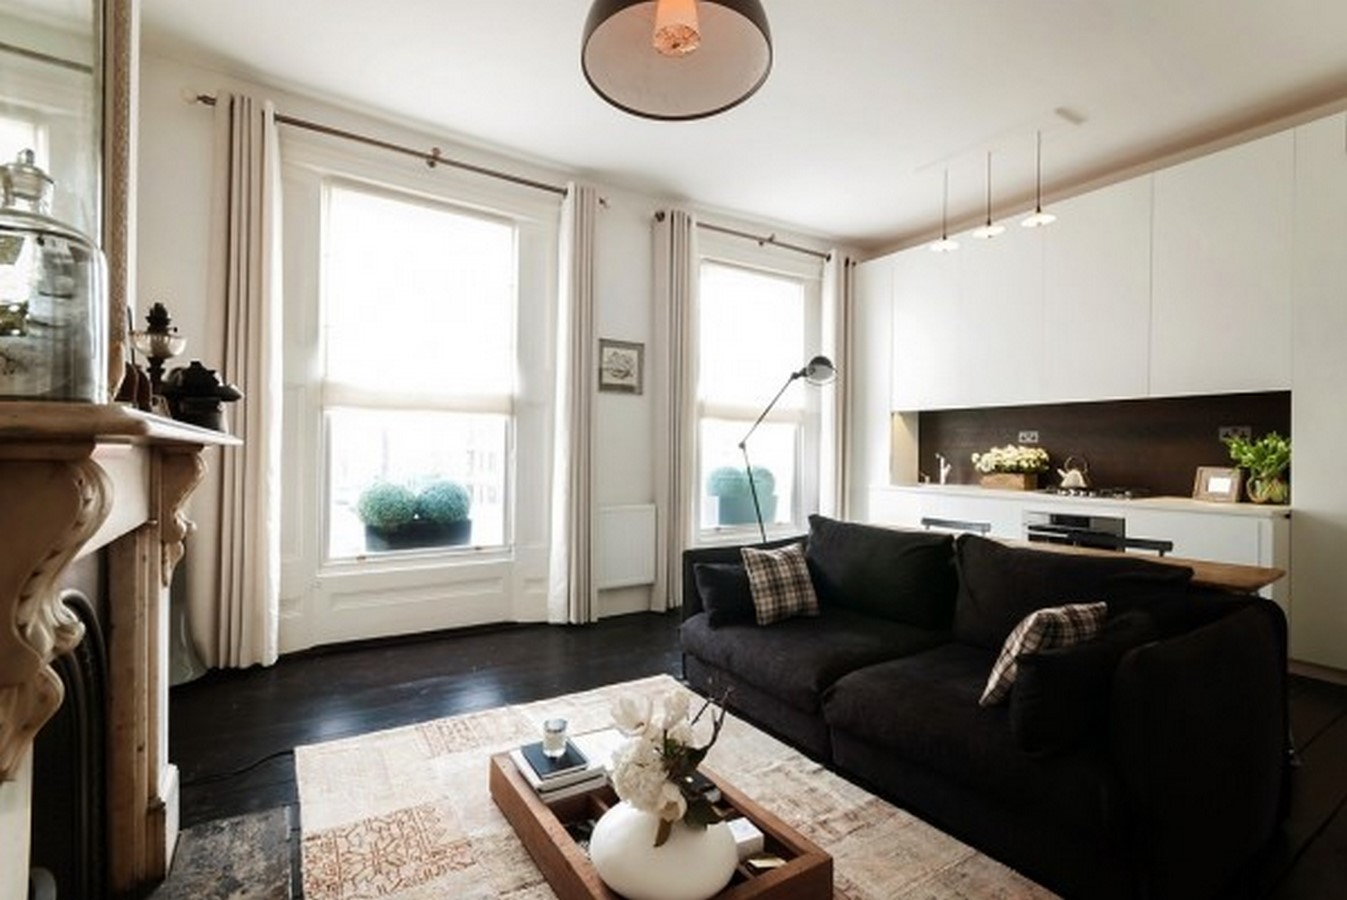 Can luxury fit into a 600sq.ft apartment - Sheet7